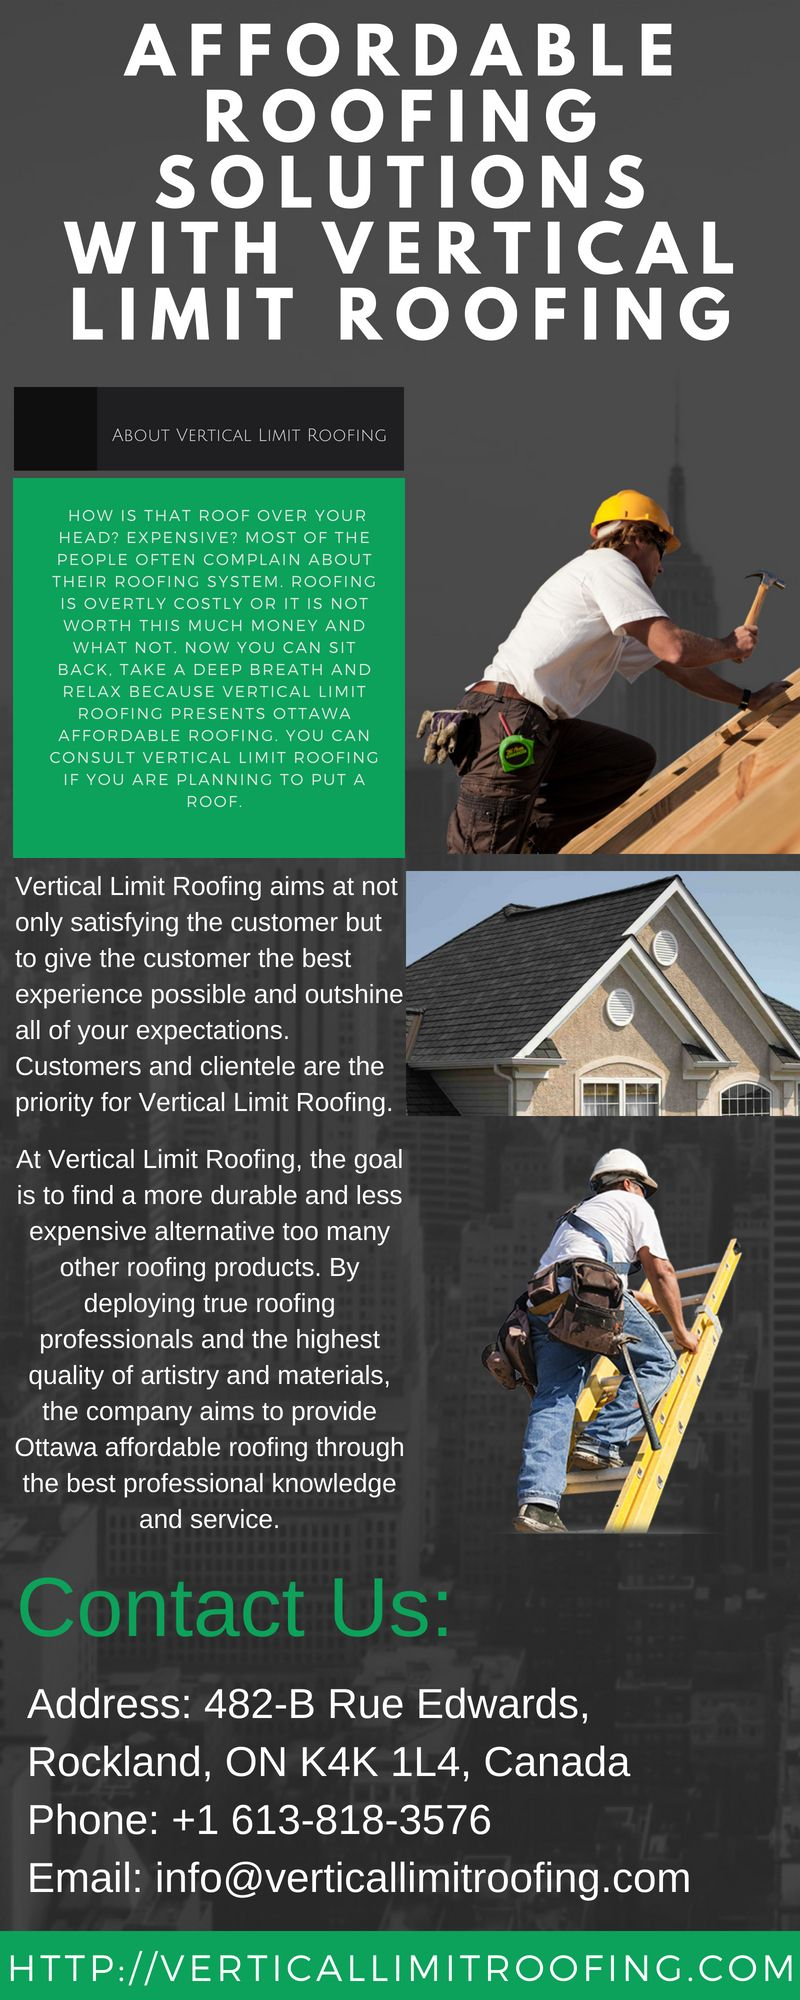 Verticallimitroofing Is A Roof Repair Company In Ottawa Area And We Provide Top Quality Residential Roof Repair And Full Roof Repair Affordable Roofing Roofing